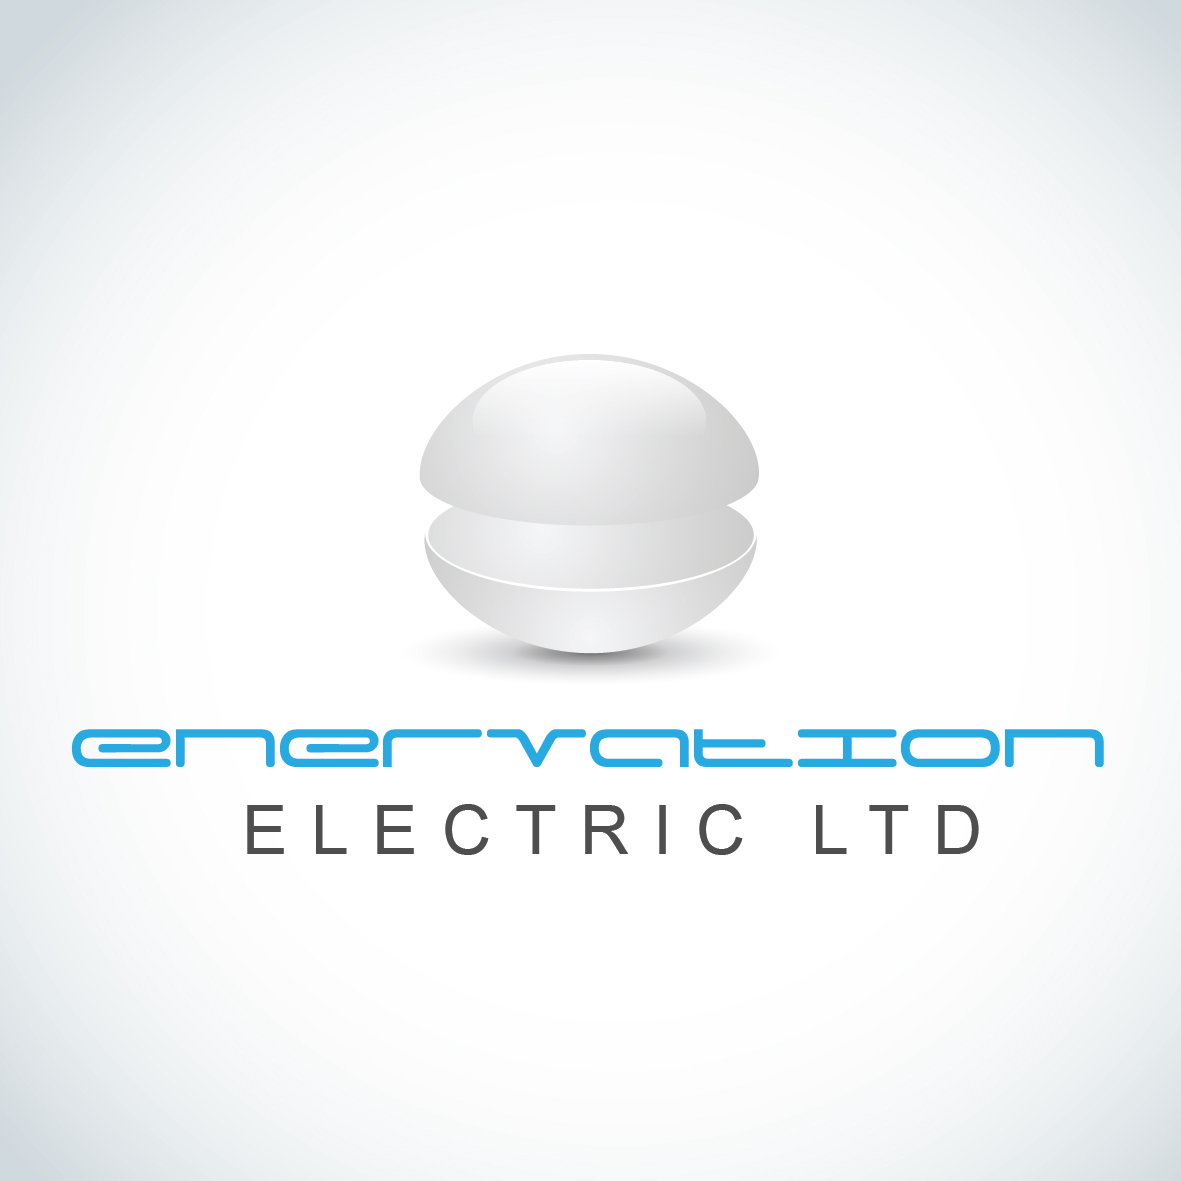 Business Card Design by aesthetic-art - Entry No. 136 in the Business Card Design Contest Enervation Logo Design.